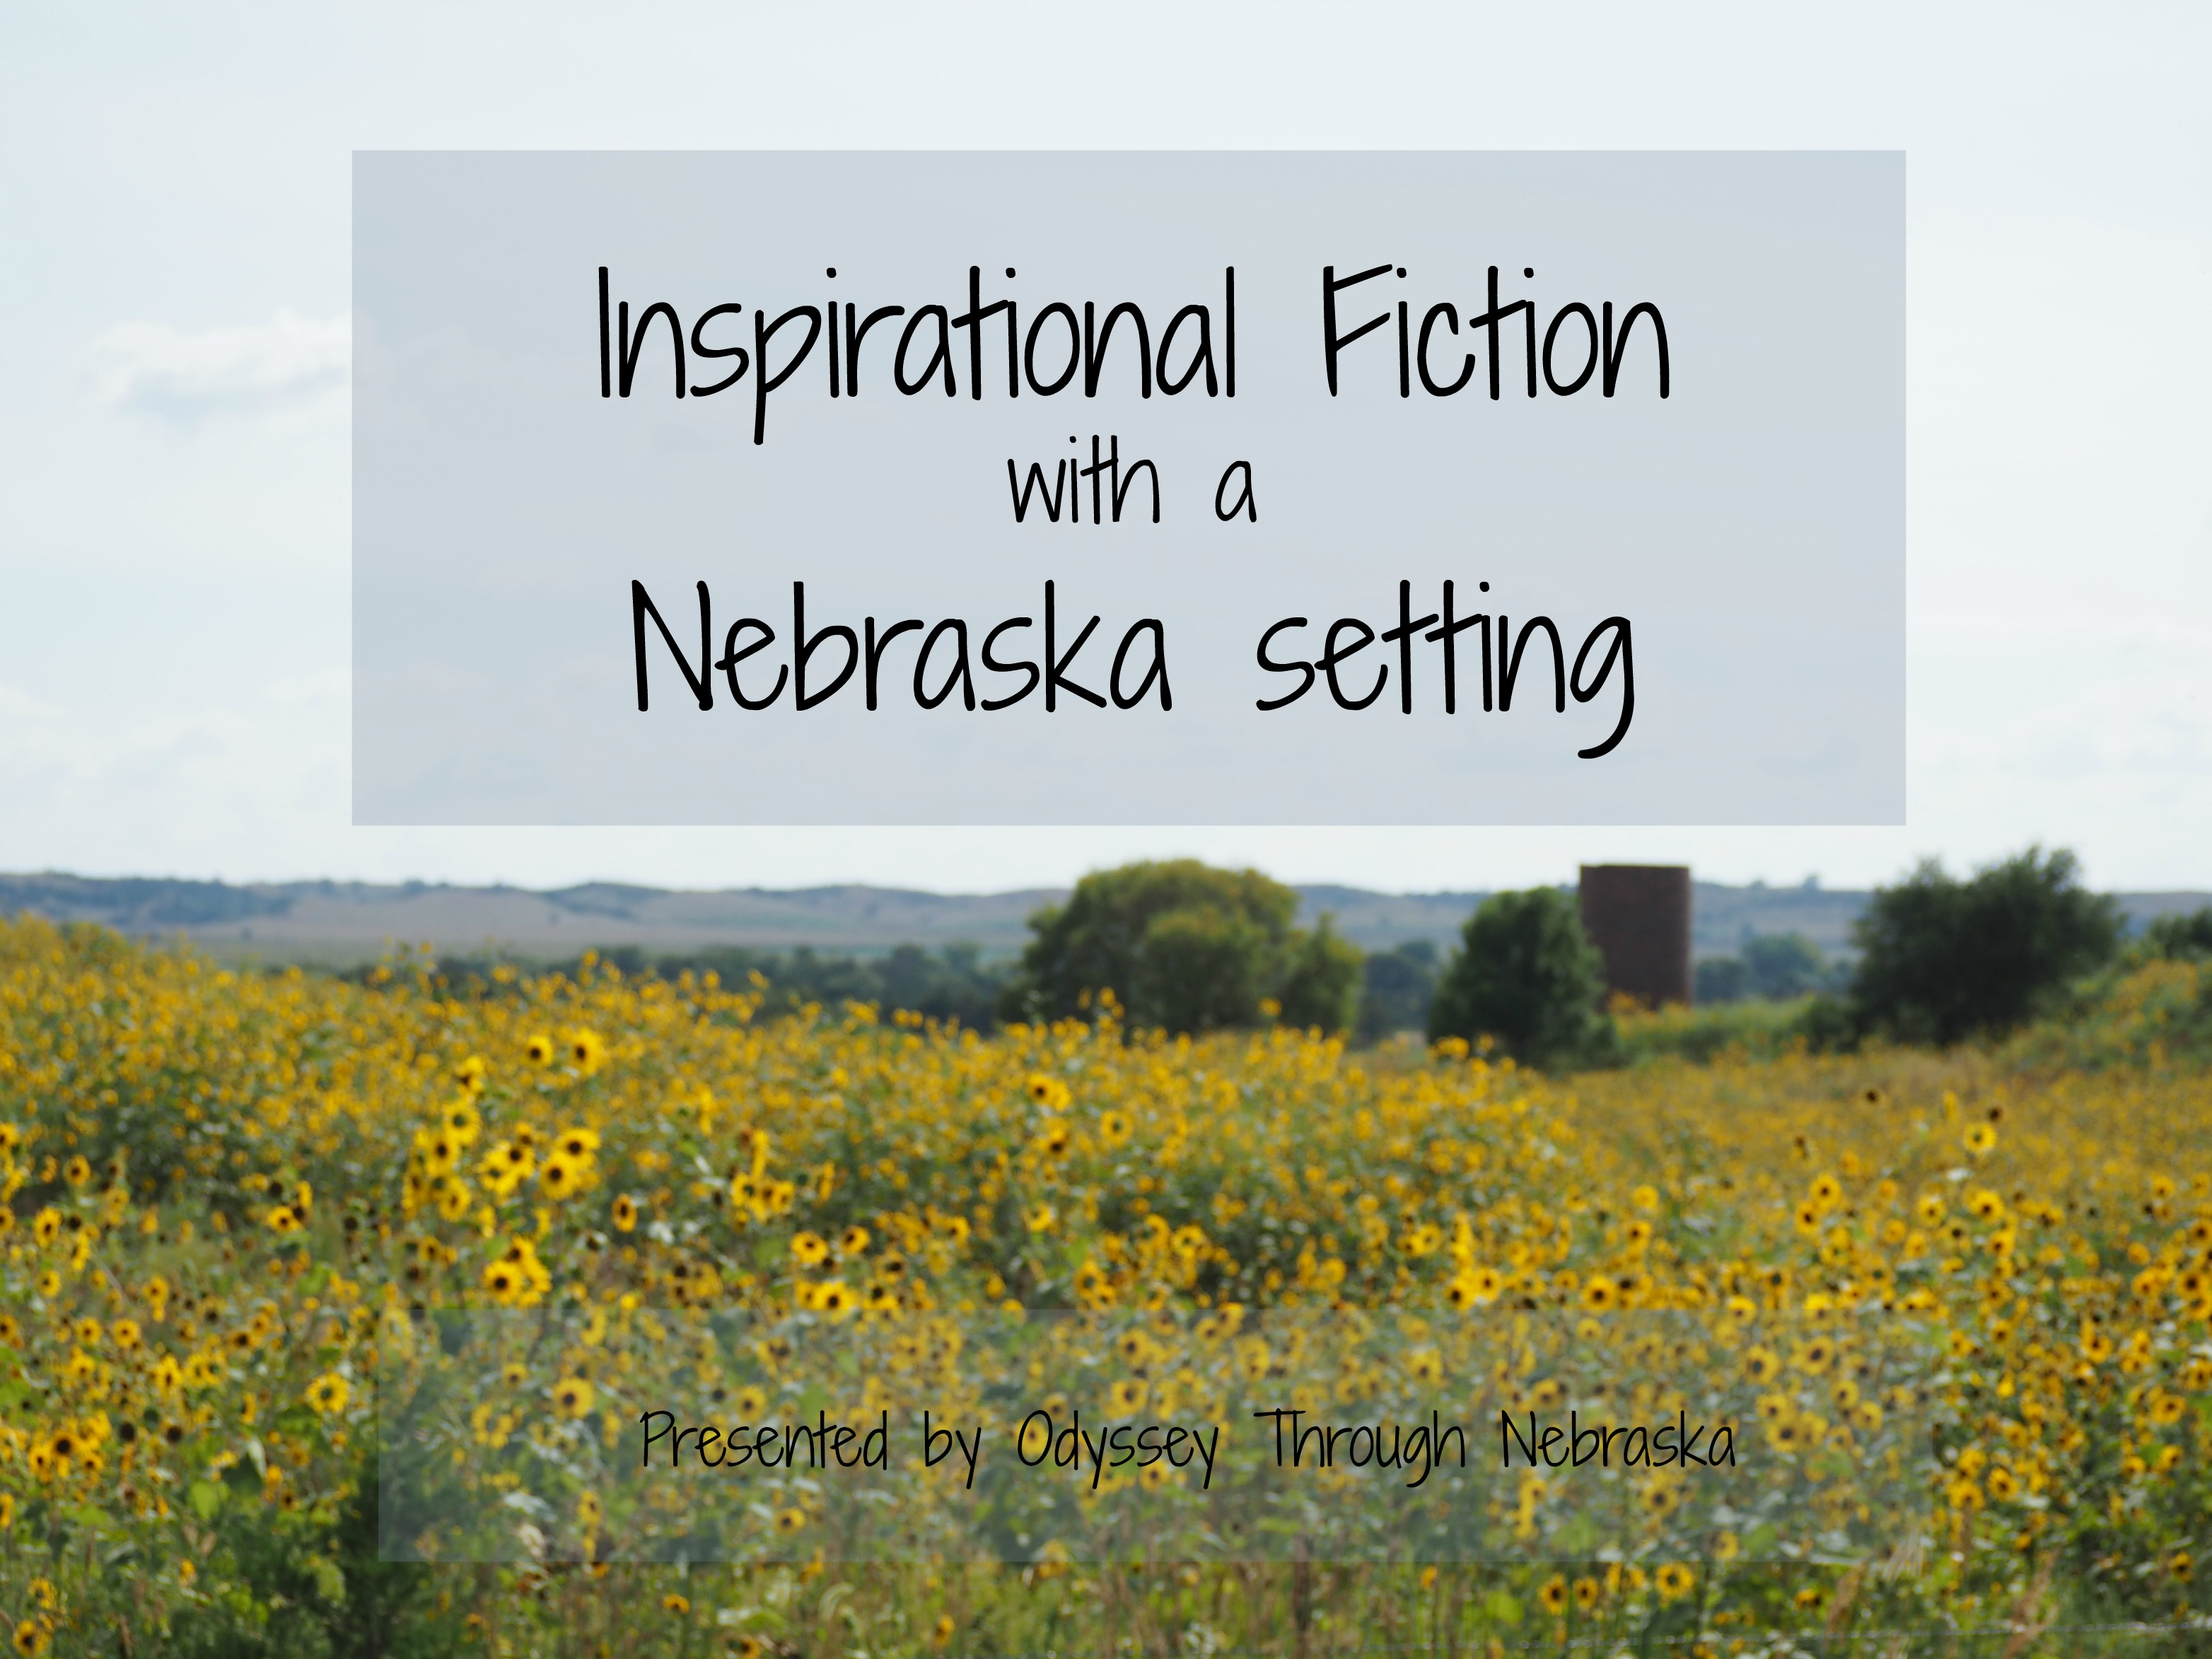 Inspirational Fiction with a Nebraska setting